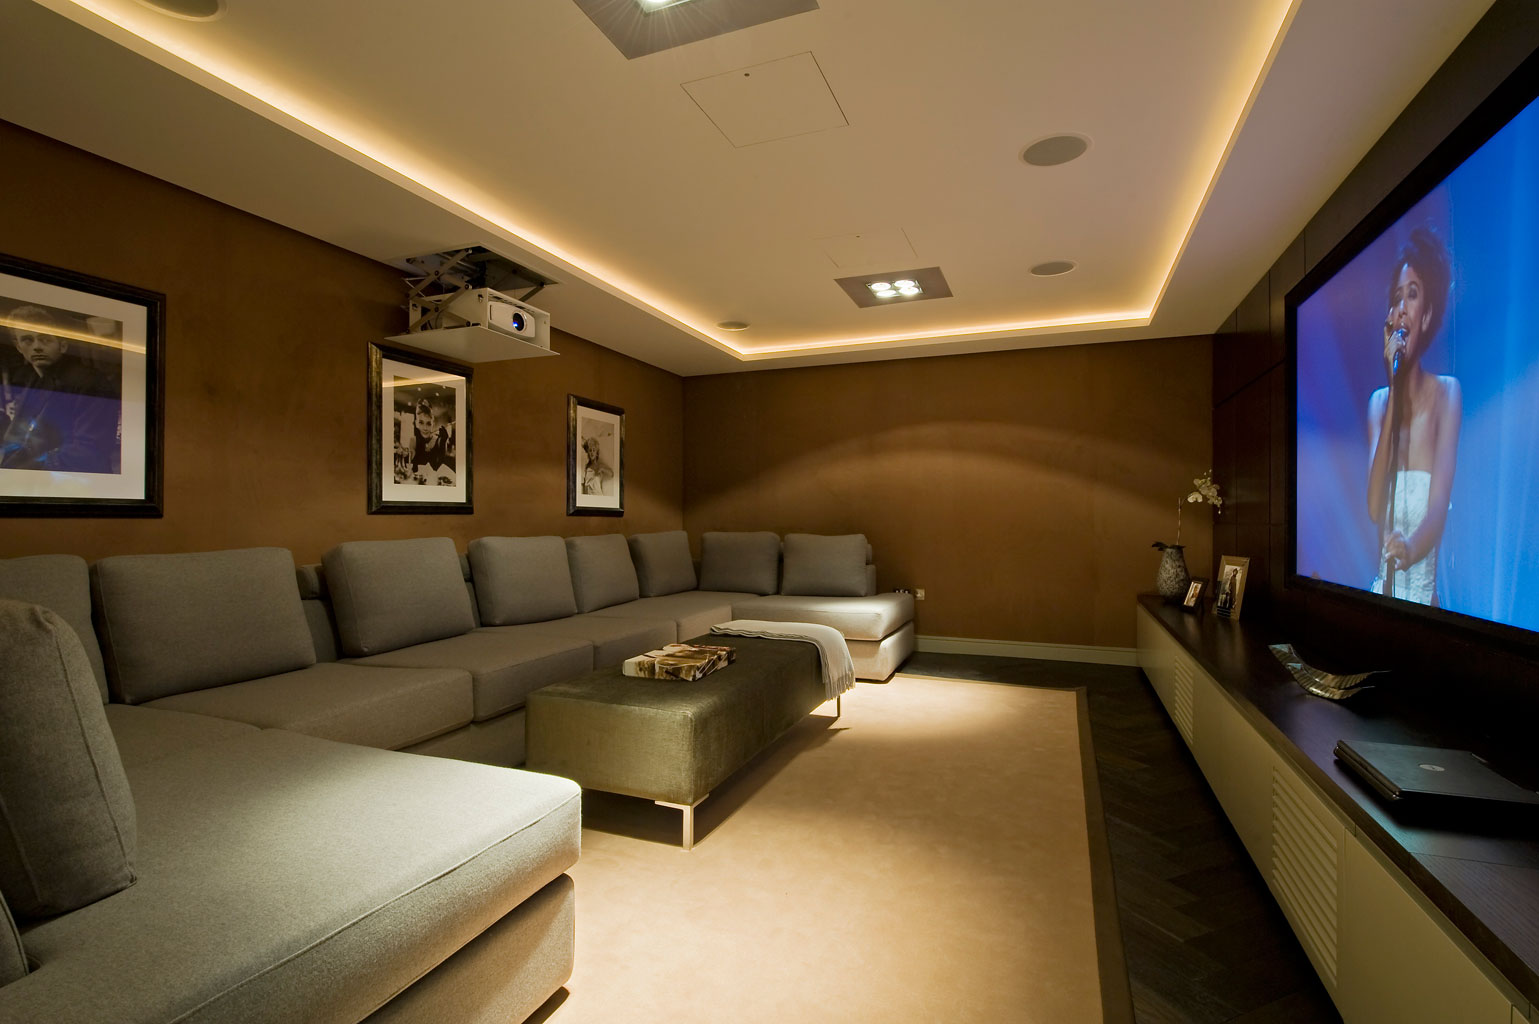 Home Theater as Addition to Large Modern Interior. Very warm and minimalistic design